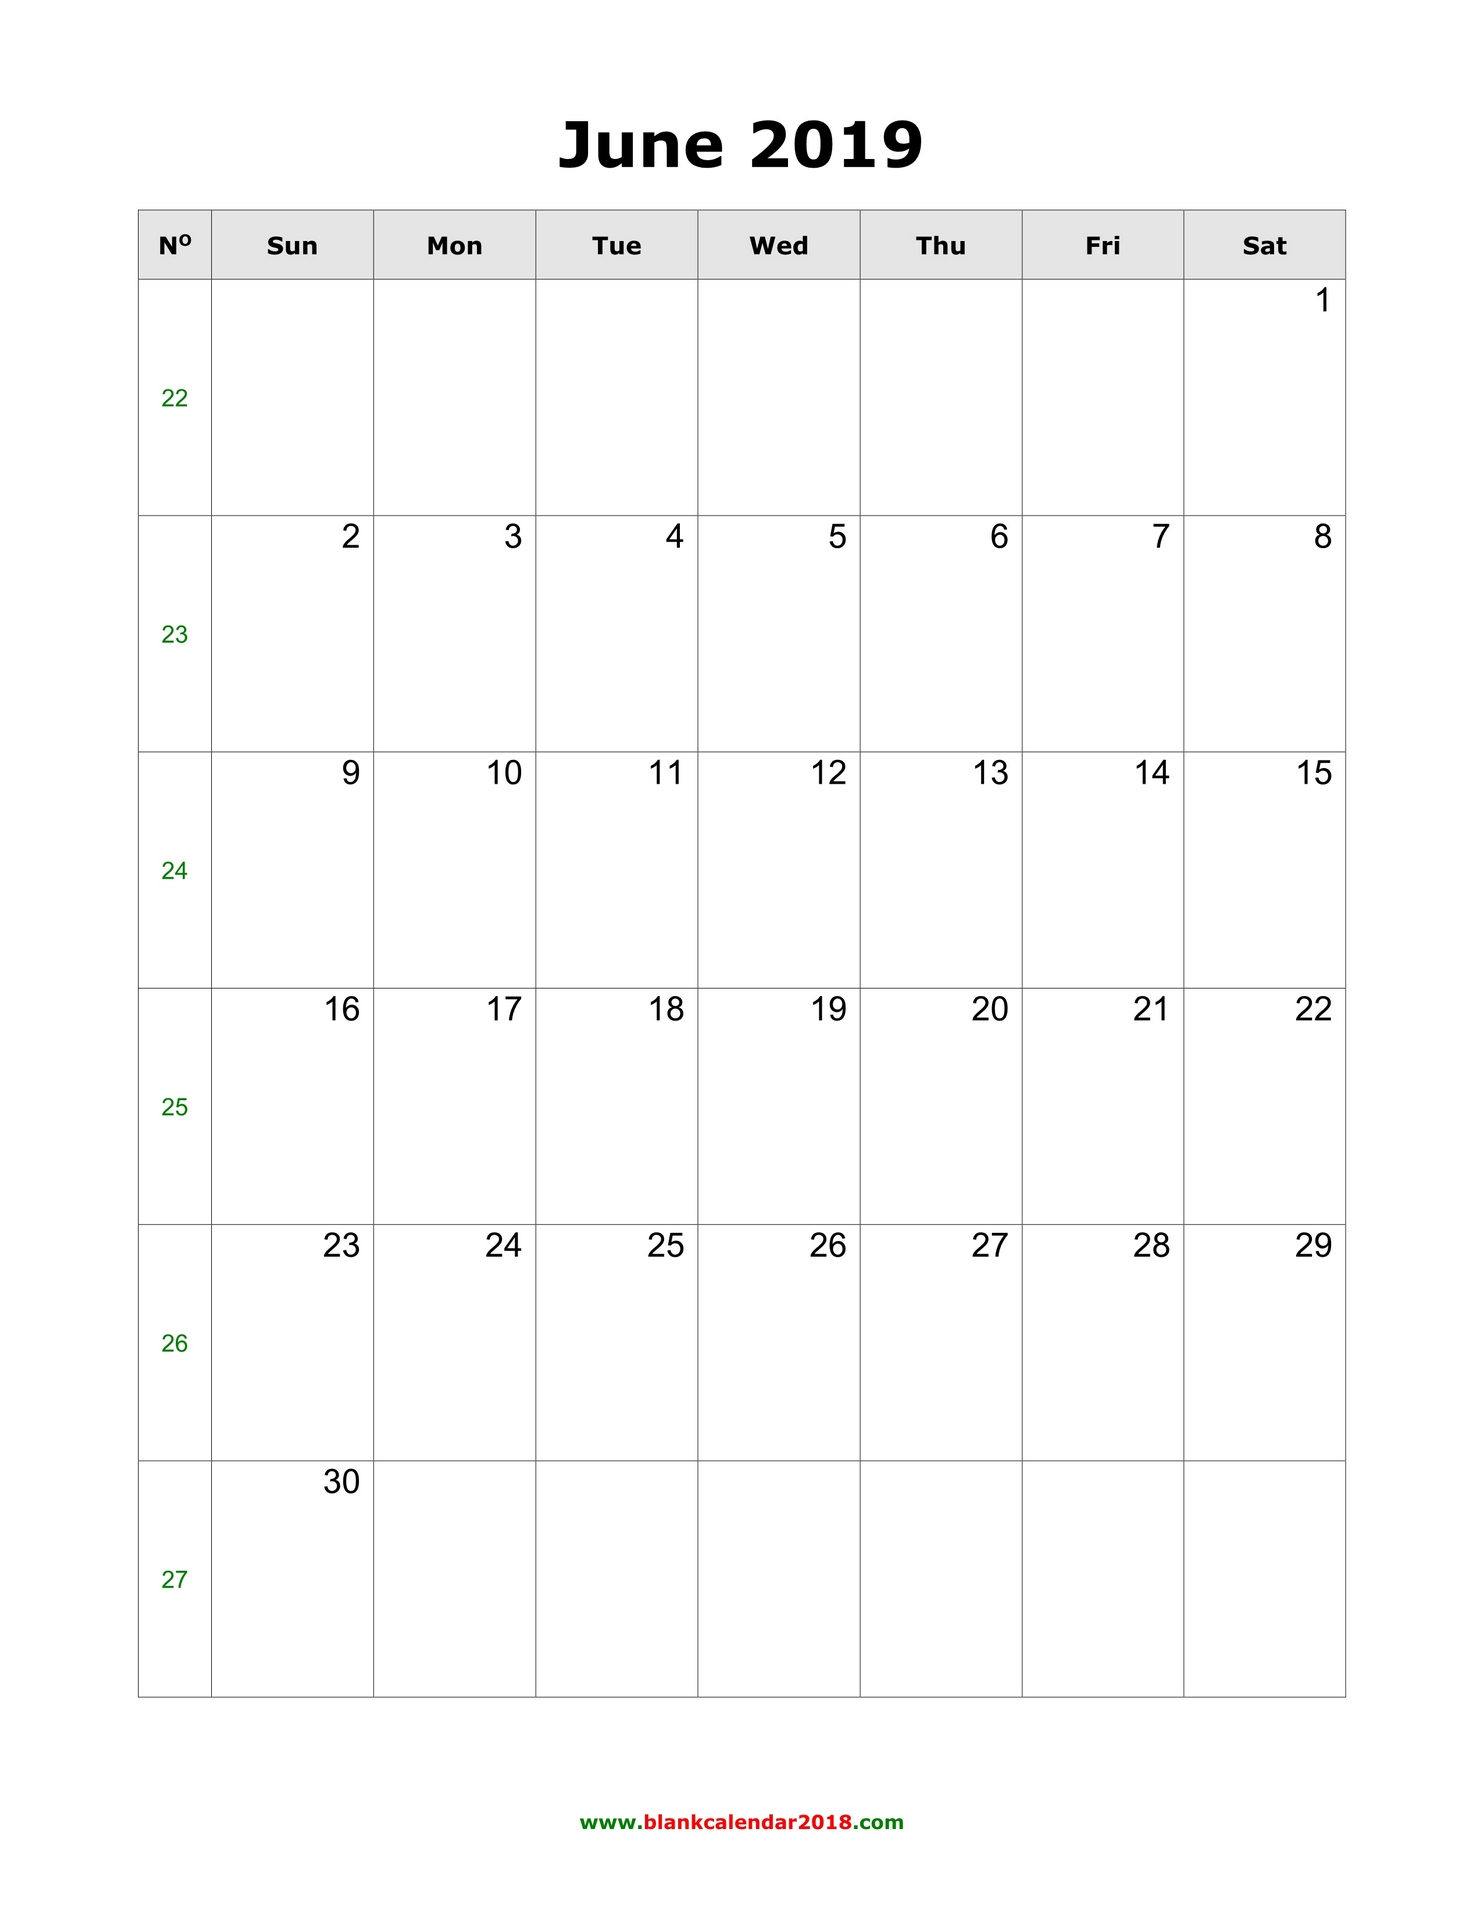 graphic about Free Printable June Calendar called Blank Calendar for June 2019